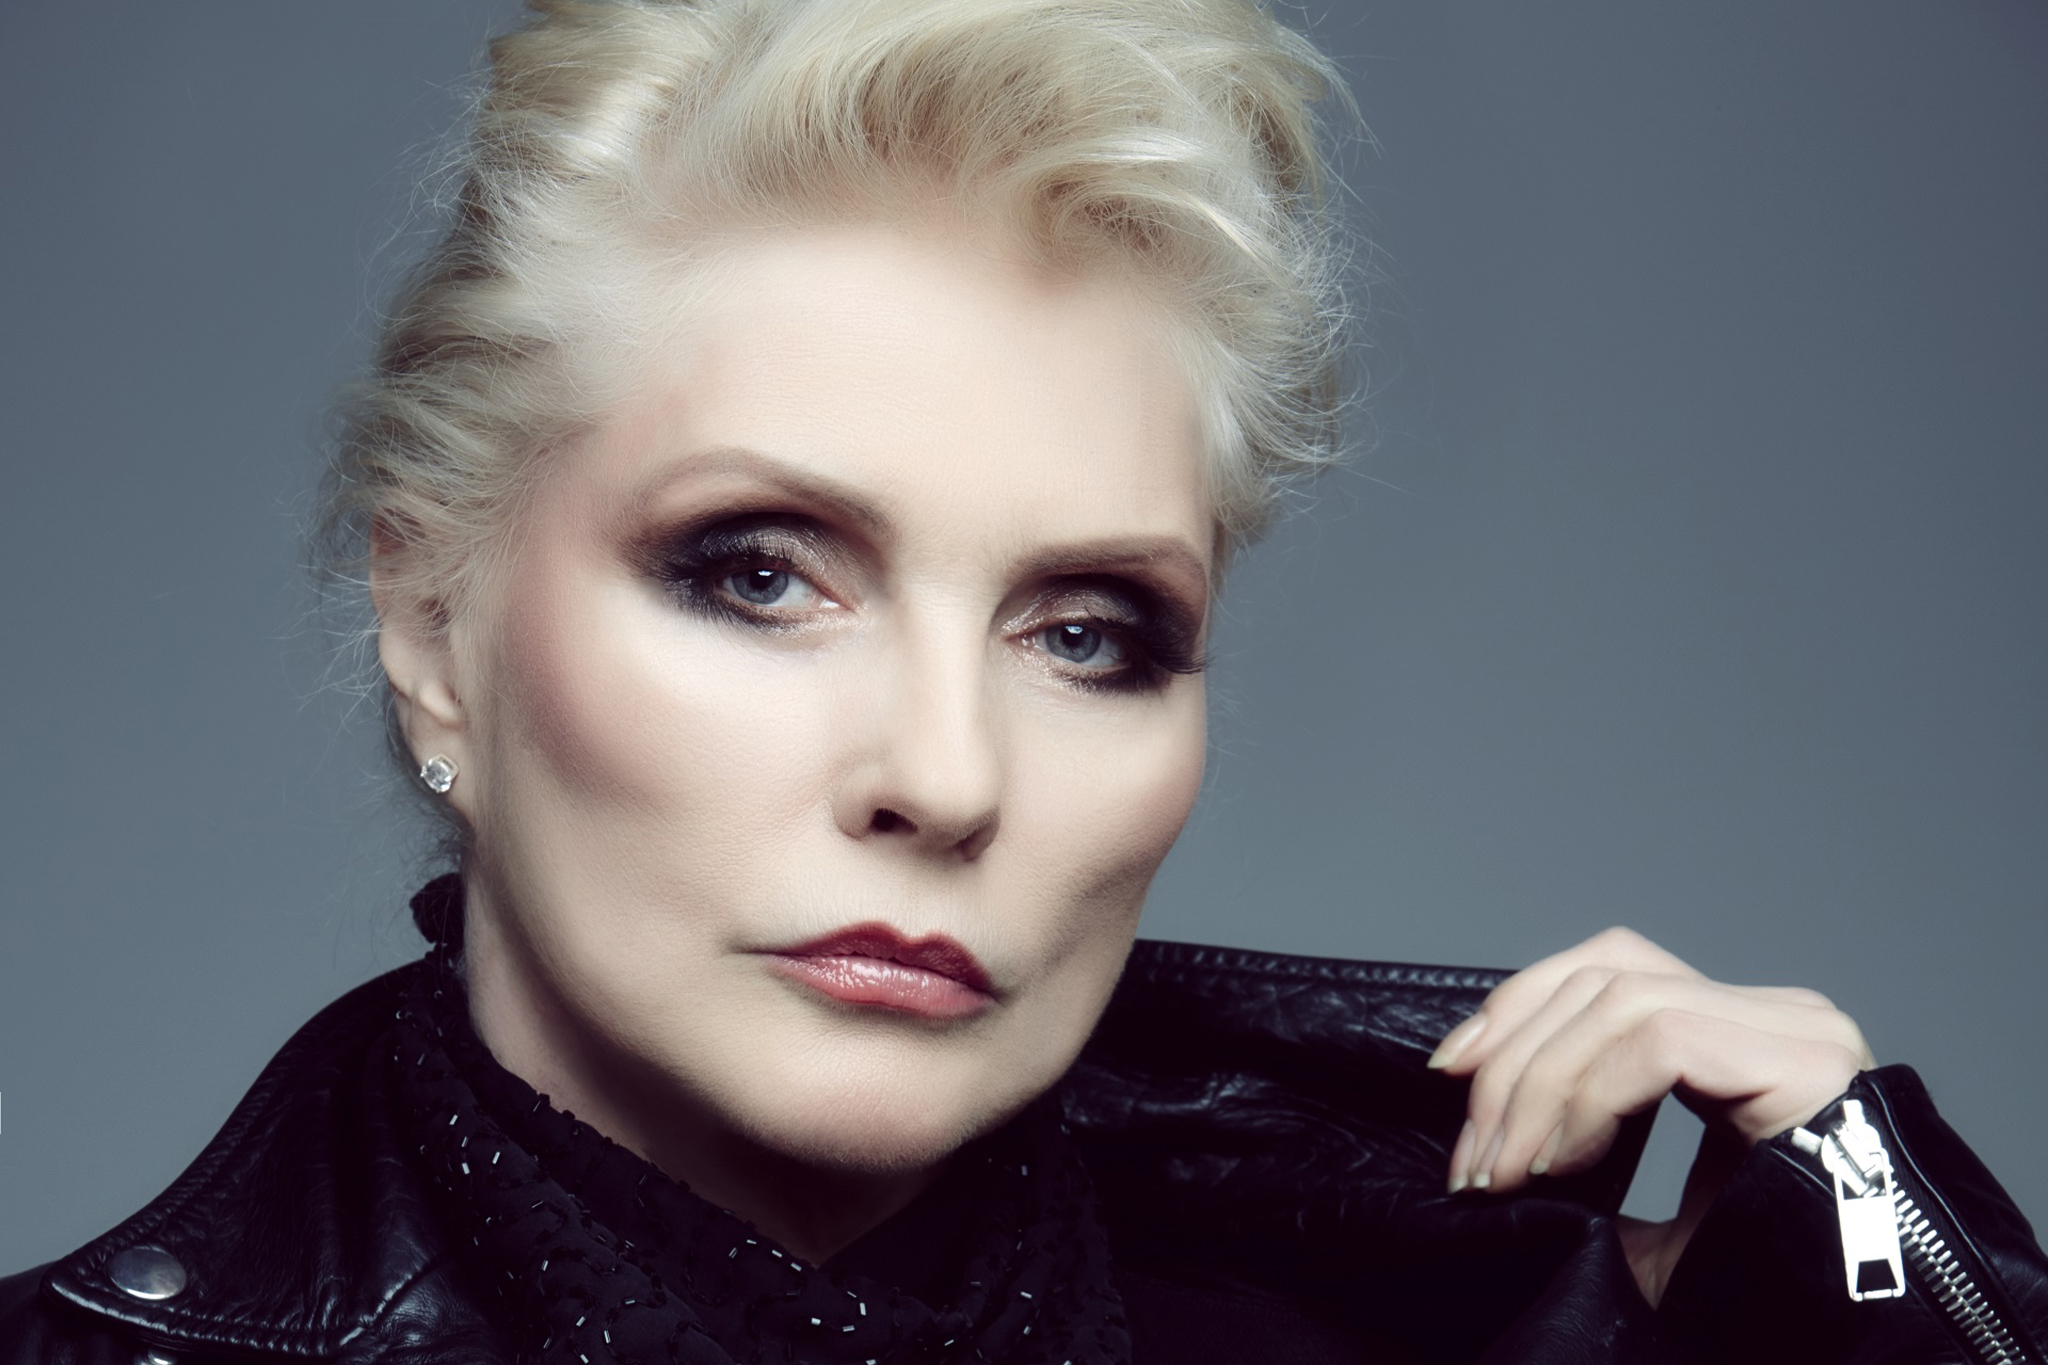 Blondie's Debbie Harry dishes on her new cabaret show